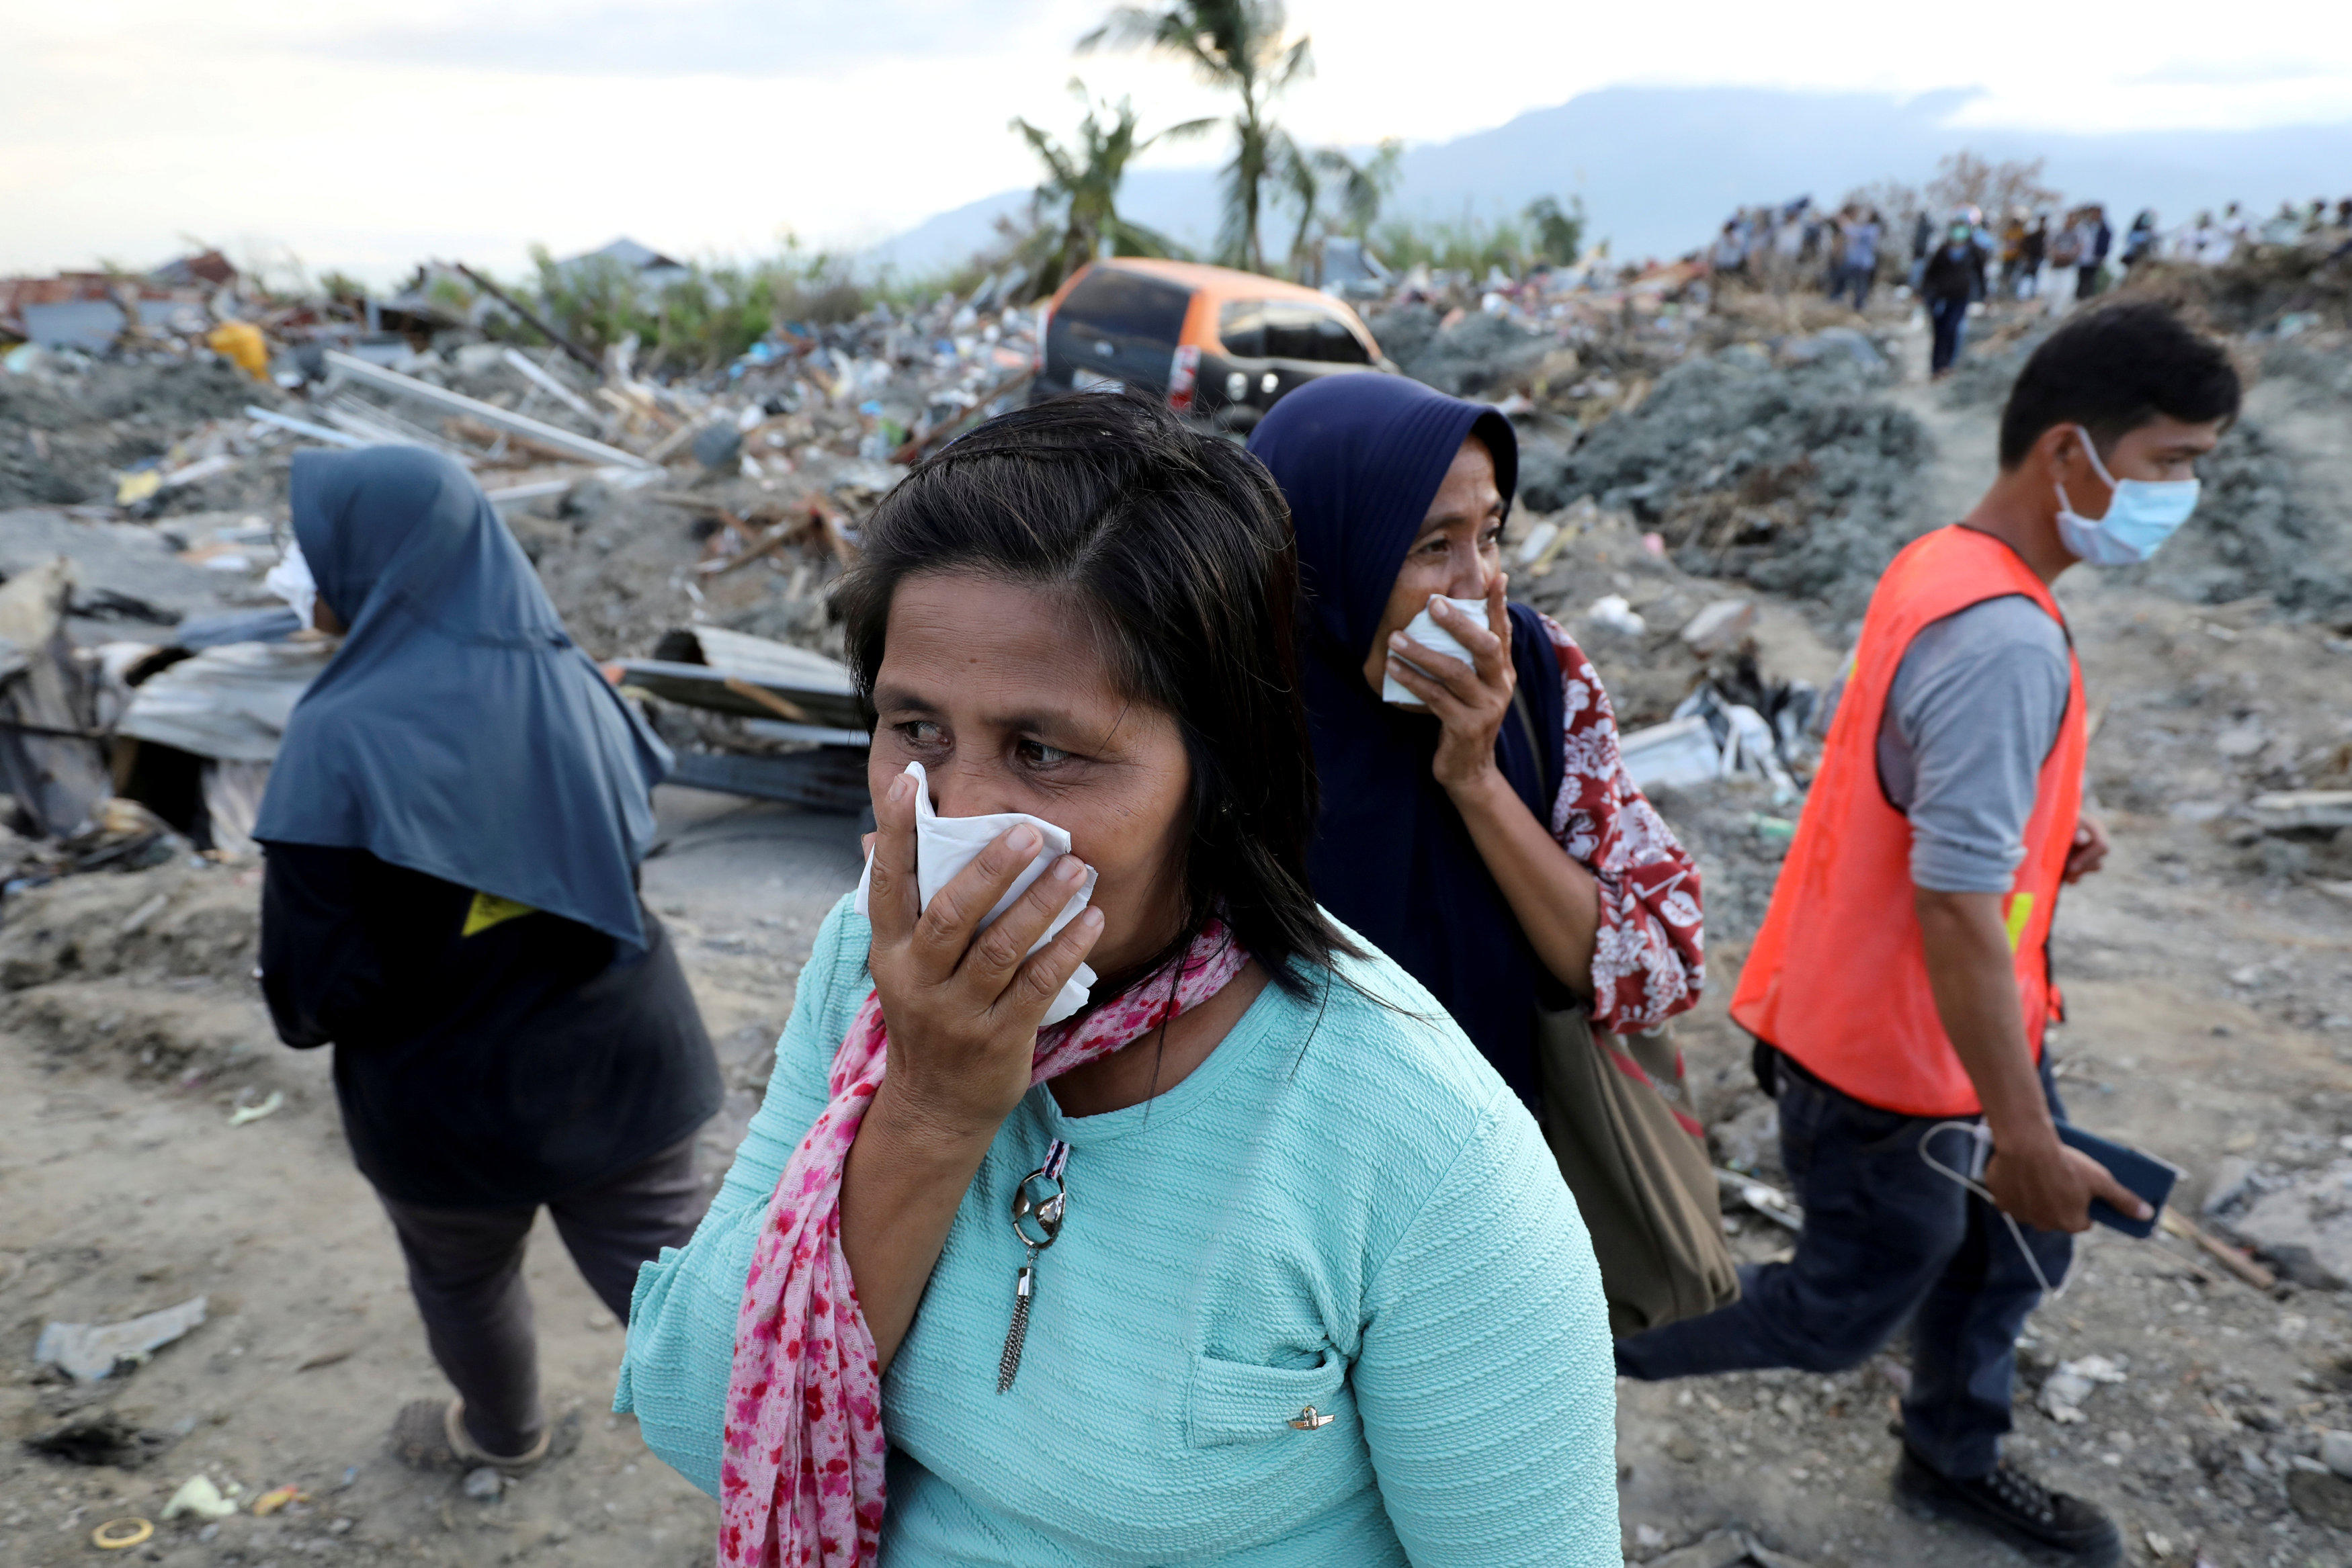 Indonesia earthquake and tsuami death toll nears 2,000, with